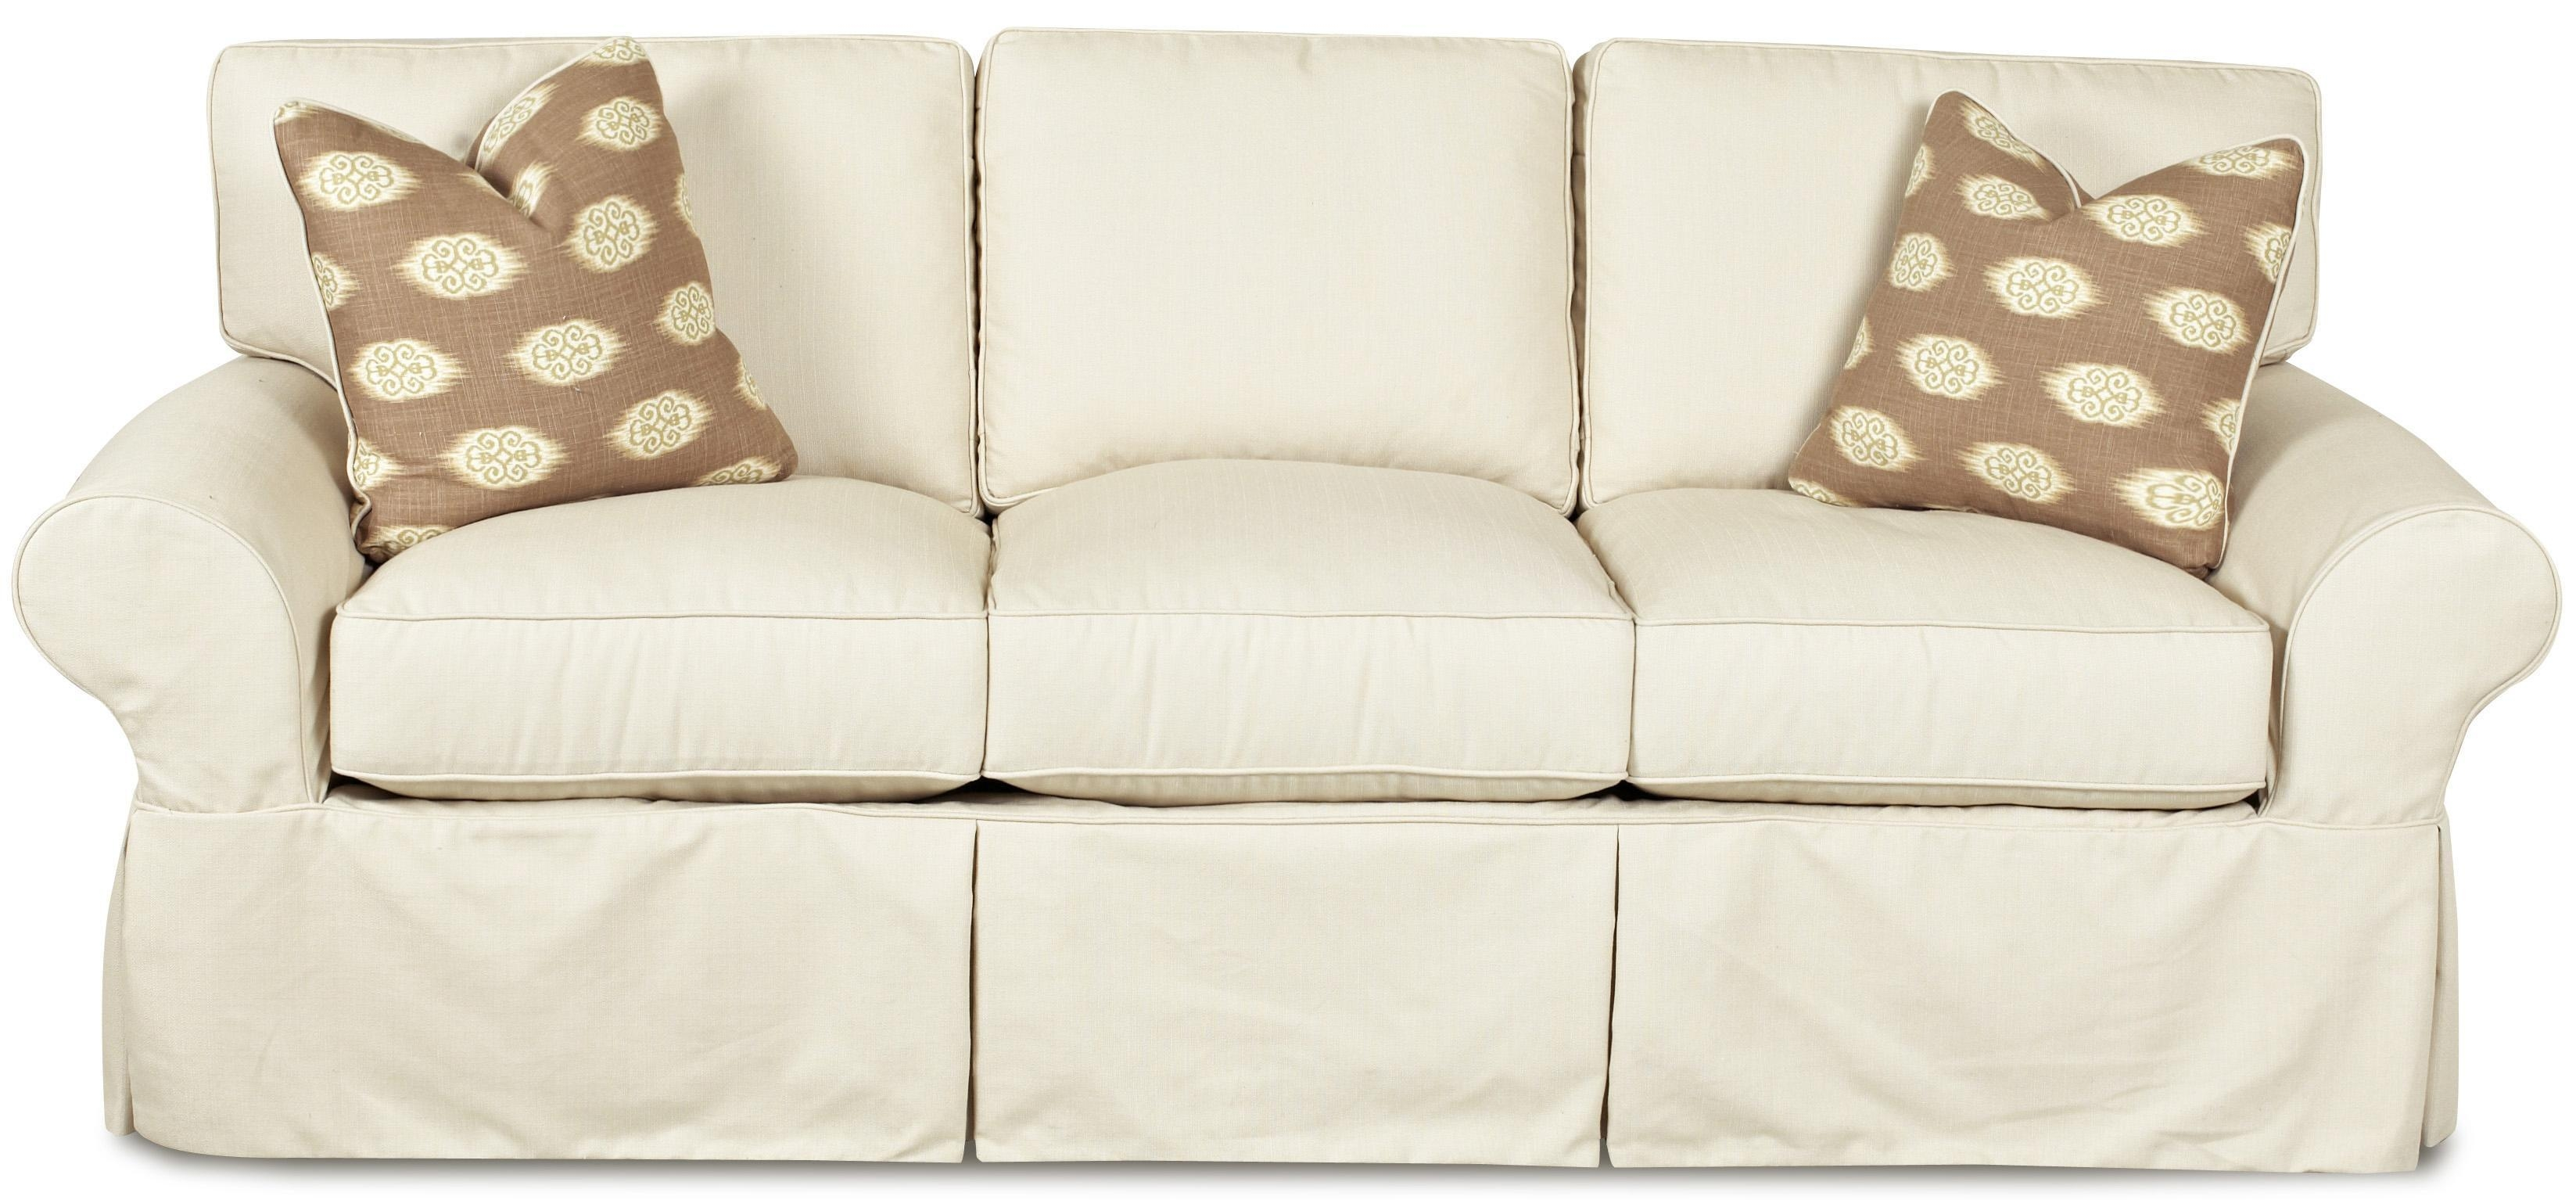 Furniture: Slipcovers For T Cushion Sofas | T Cushion Slipcovers Within Slipcovers For Chairs And Sofas (Image 15 of 20)